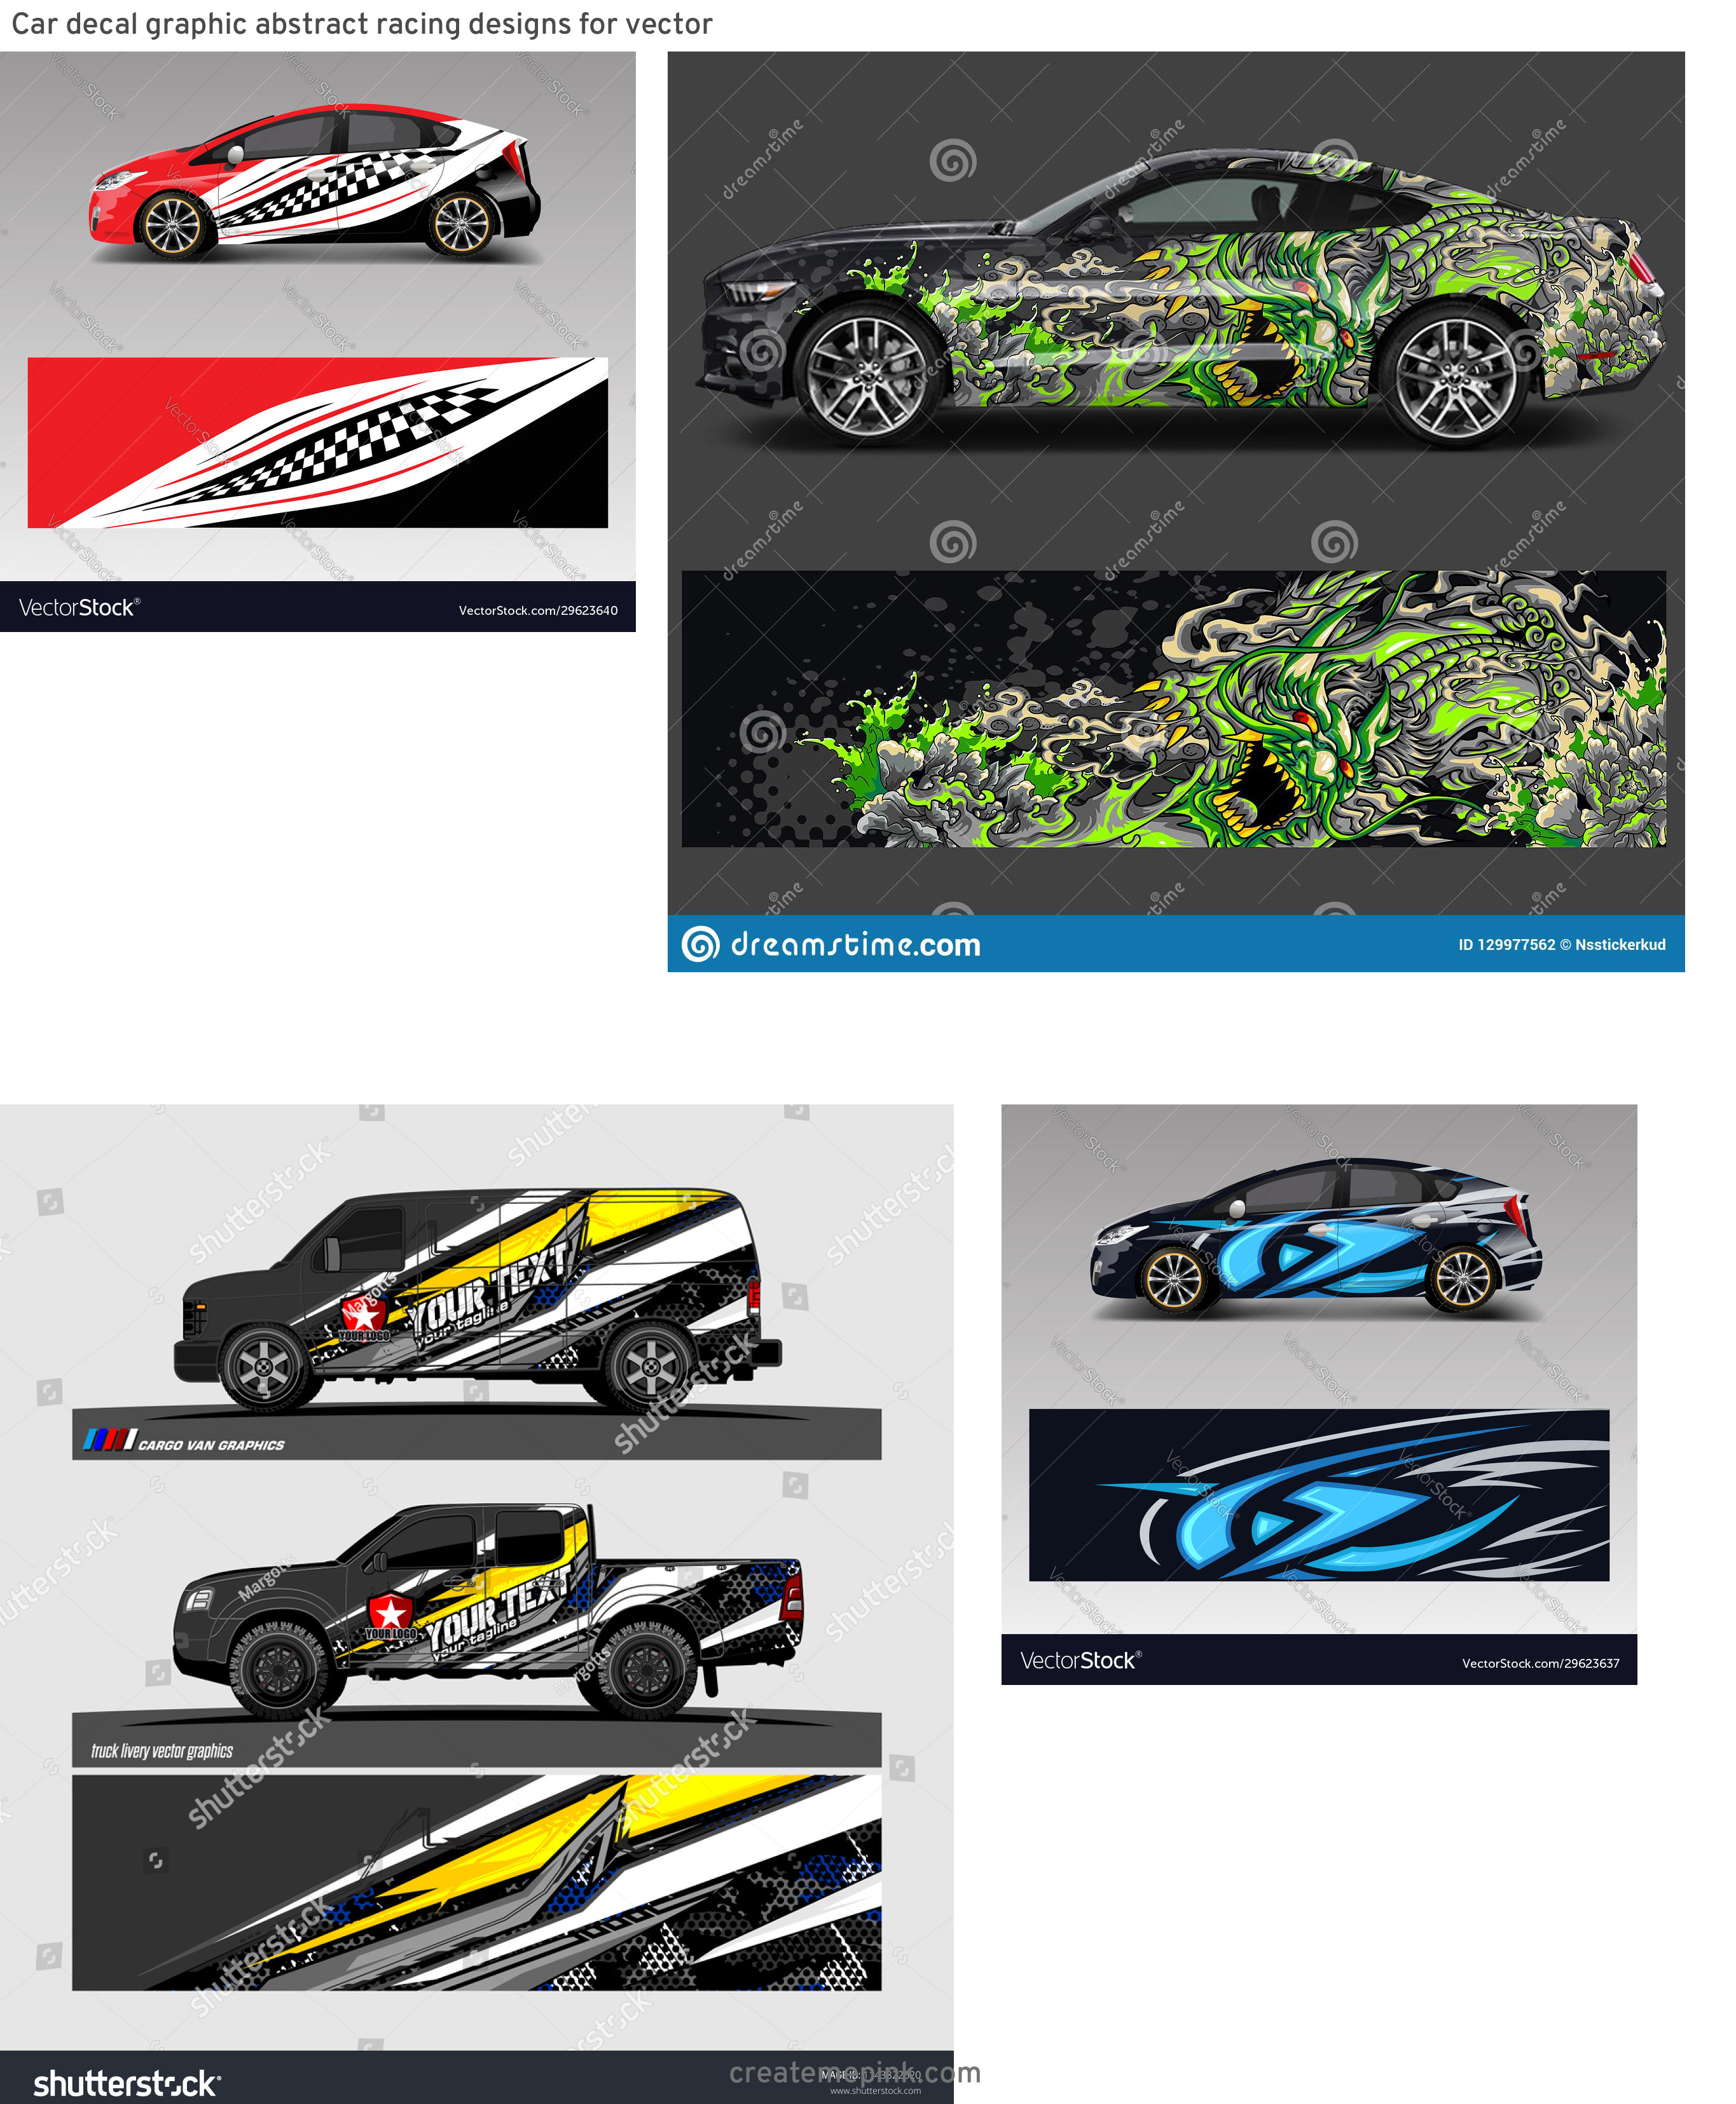 Chevrolet Racing Vinyl Vector: Car Decal Graphic Abstract Racing Designs For Vector